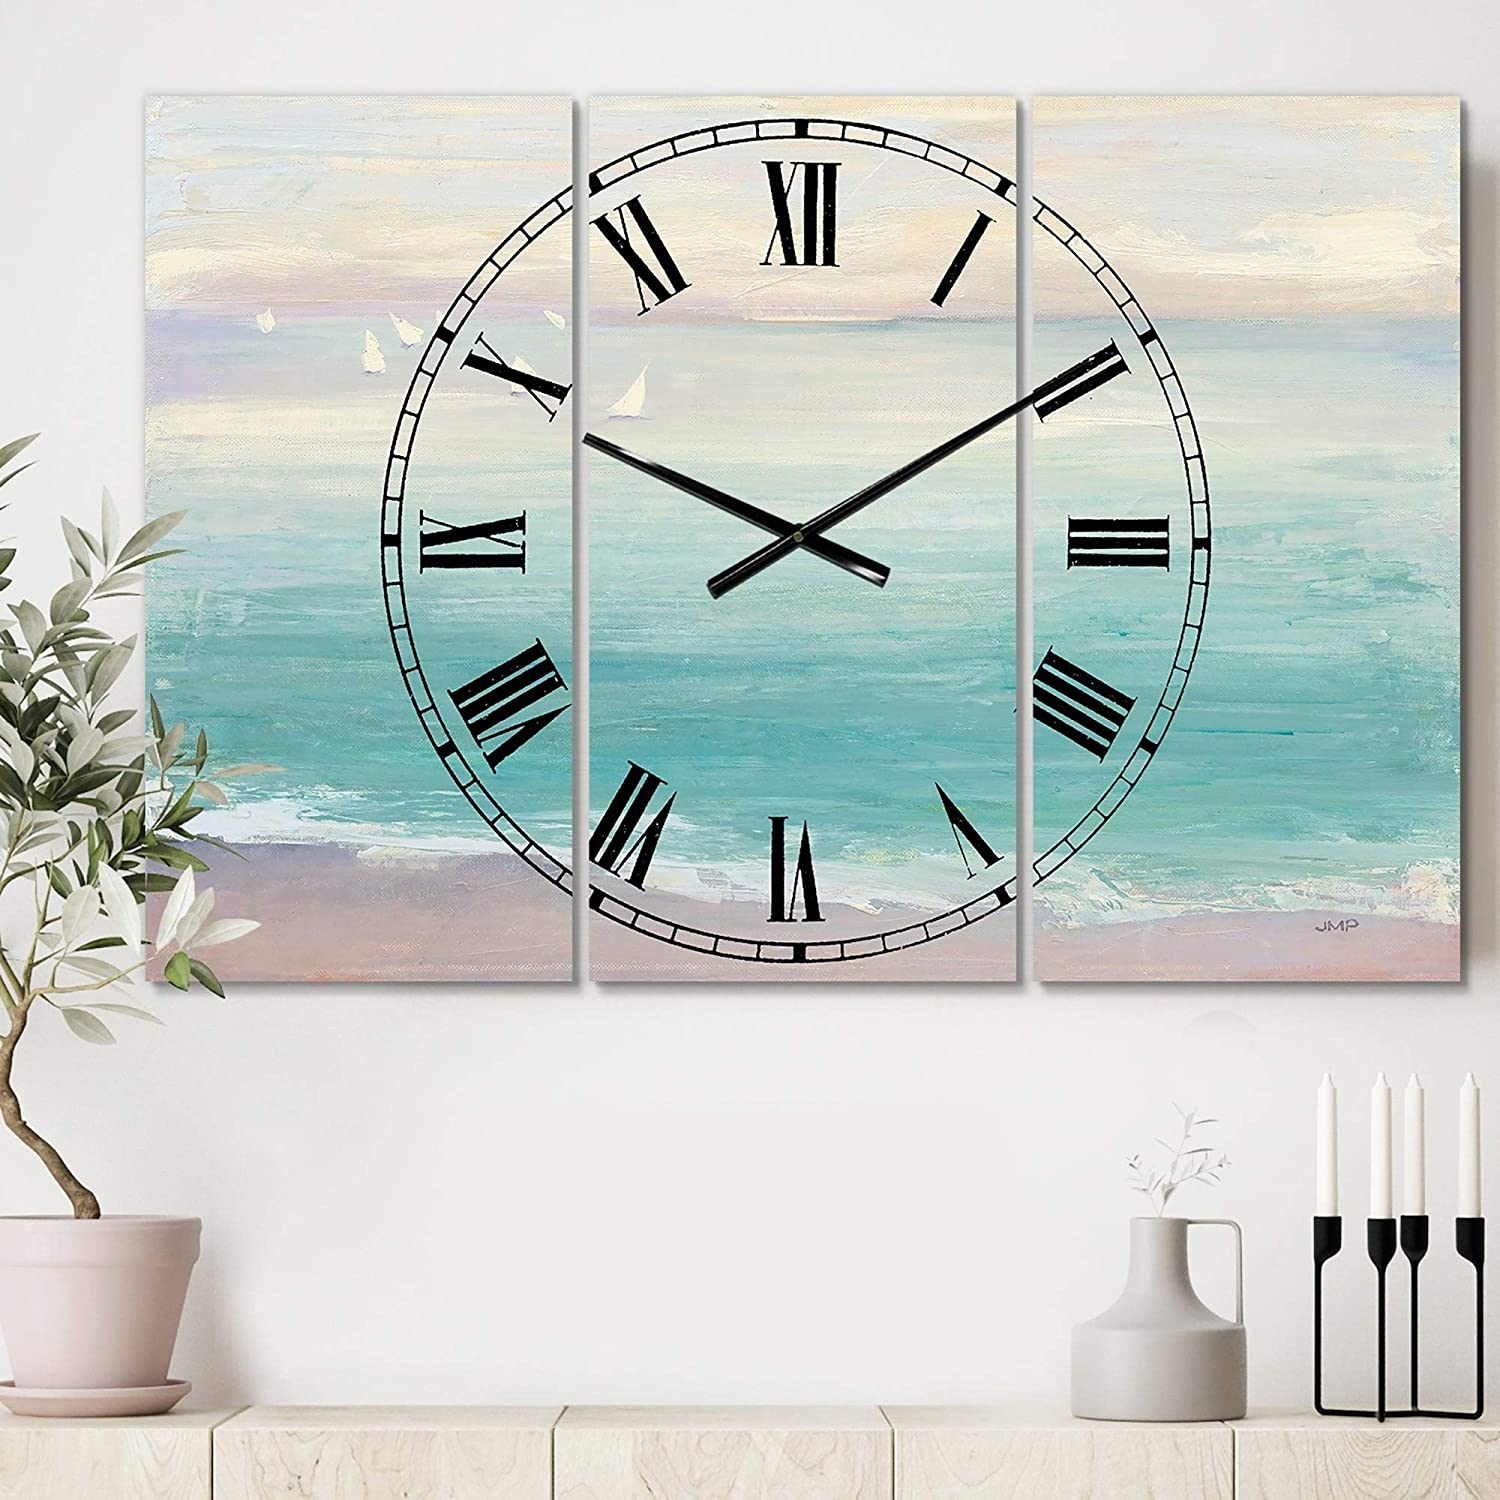 From The Shore Cottage 3 Panels Large Wall Clock 36 In Wide X 28 High Panels Blue Traditional Rectangular Aluminum Steel Finish Battery Included Home Kitchen